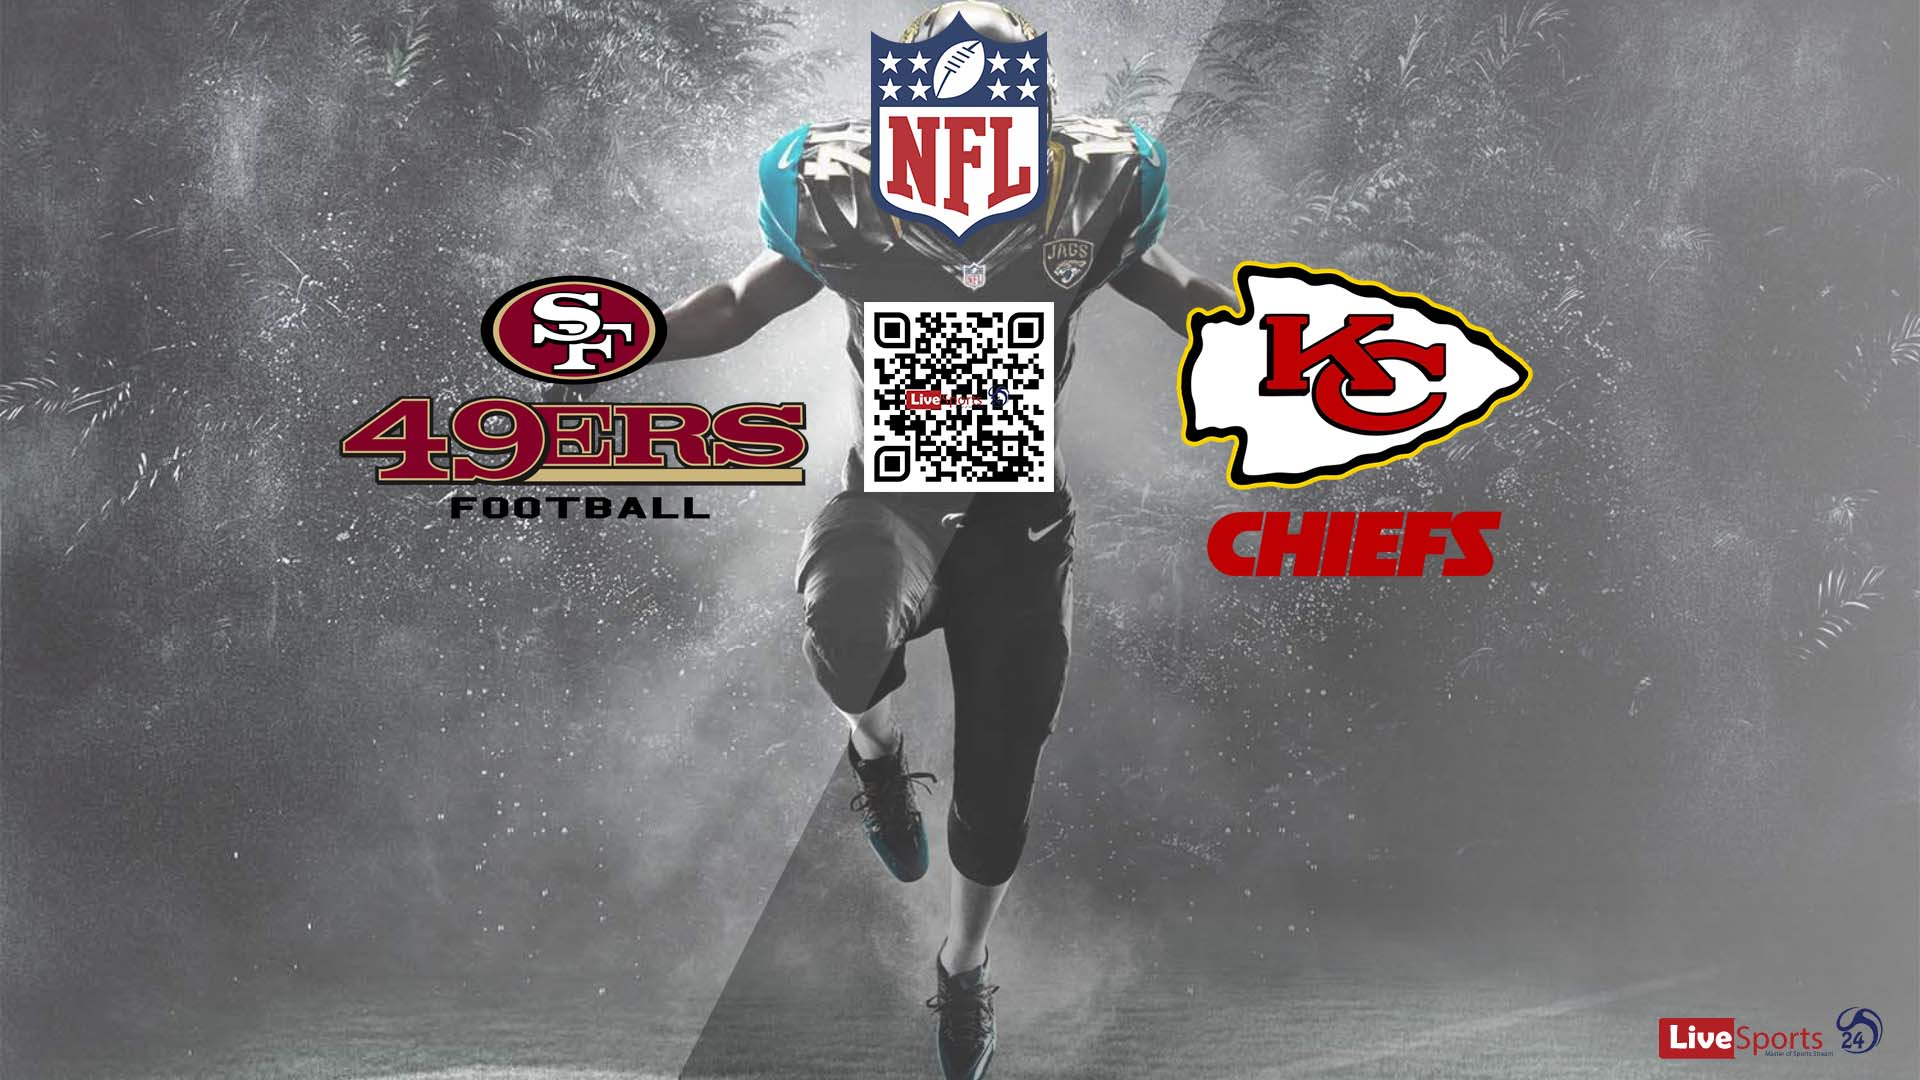 What are the Best site to 49ers vs Chiefs Live Stream?